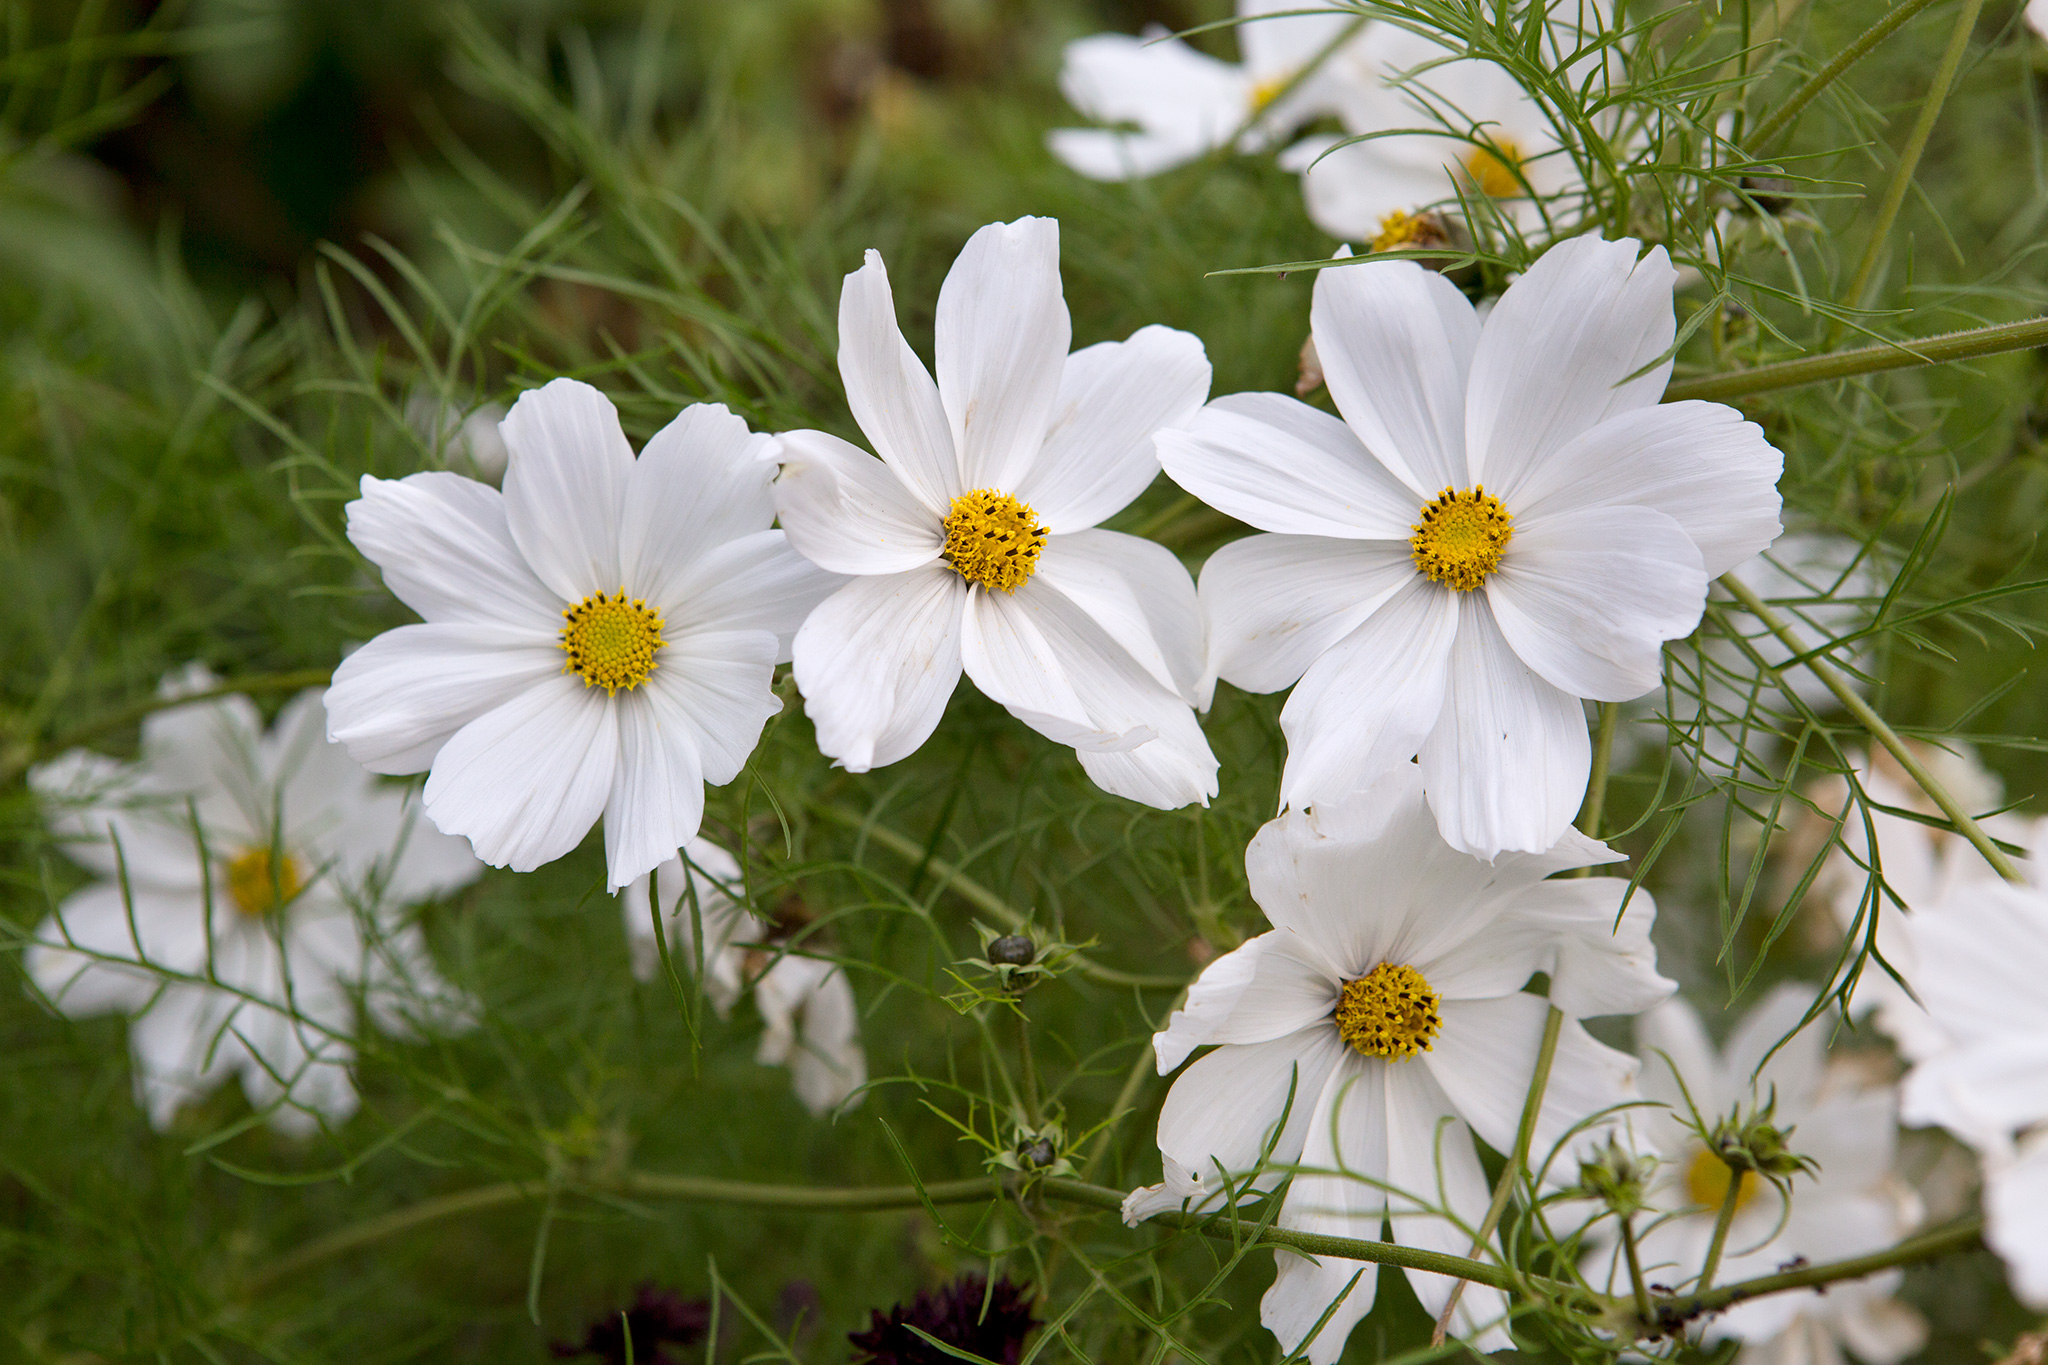 Best plants with white flowers gardenersworld keep deadheading them as the blooms fade to prolong flowering for planting ideas check out eight plants to grow with cosmos mightylinksfo